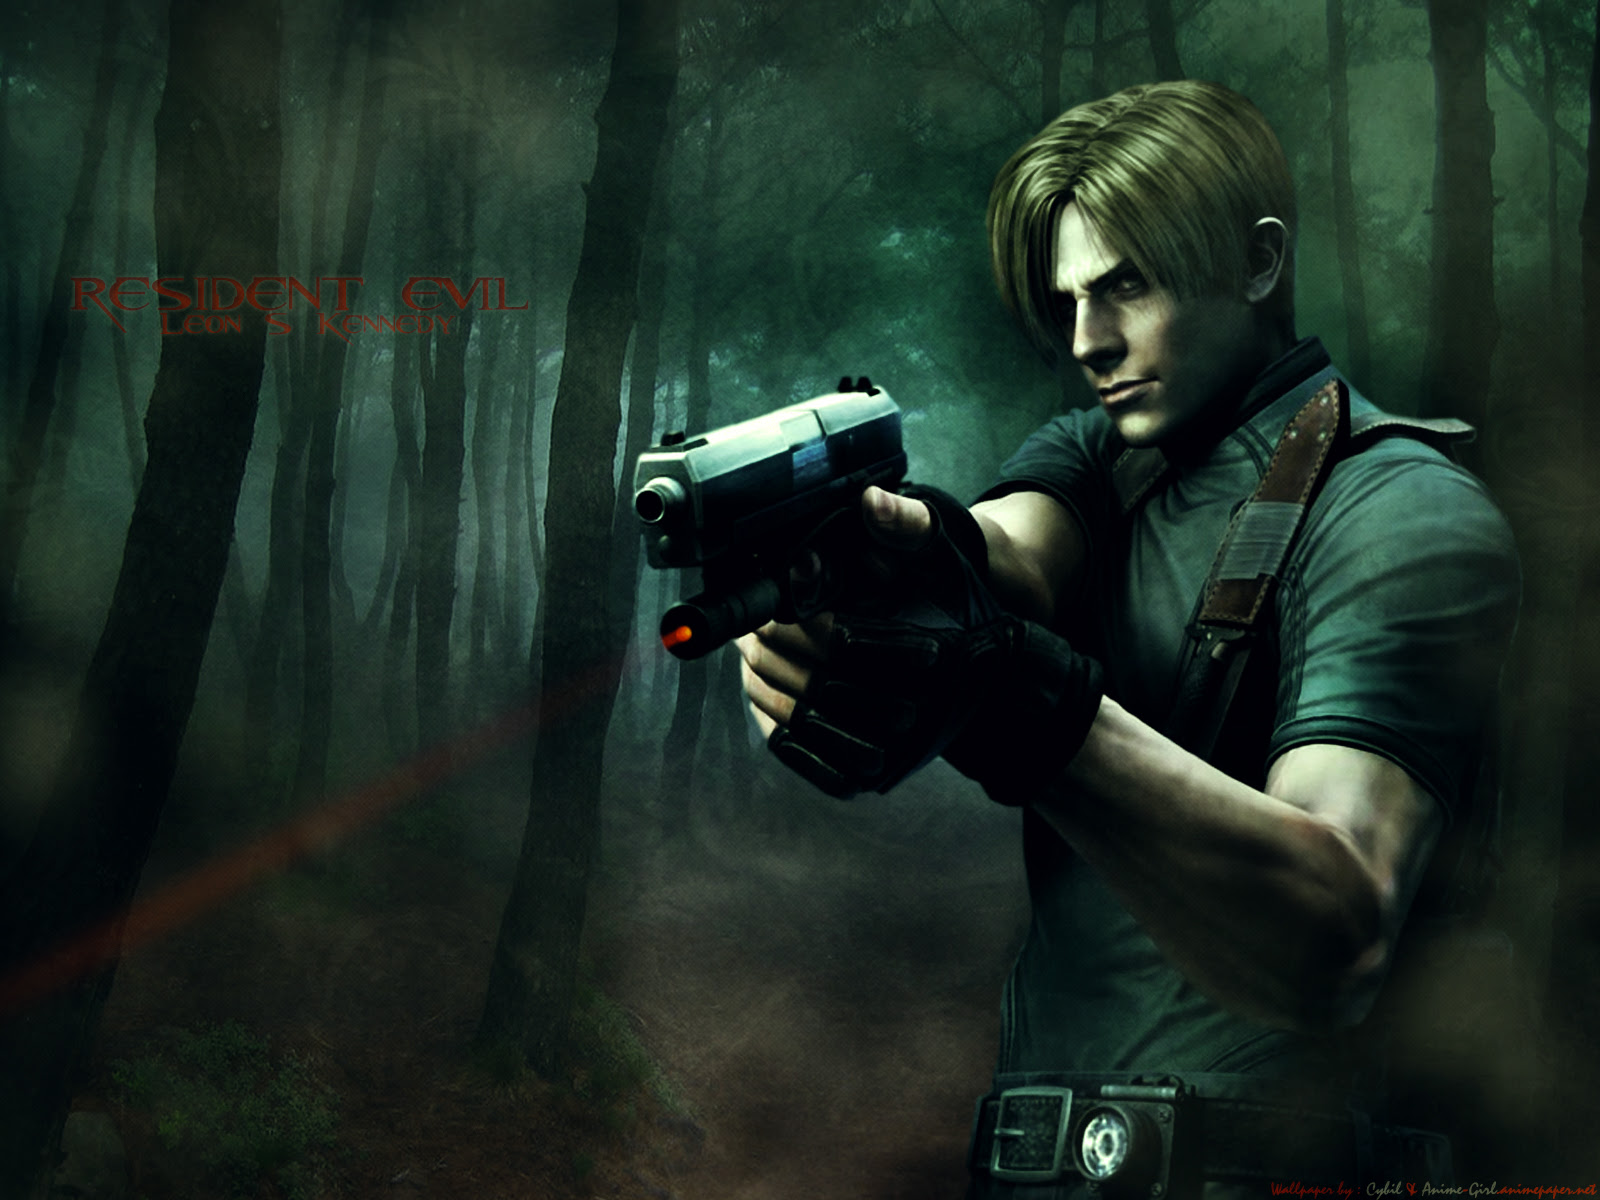 Resident Evil 4 Wallpapers Resident Evil 4 Wallpaper 33549706